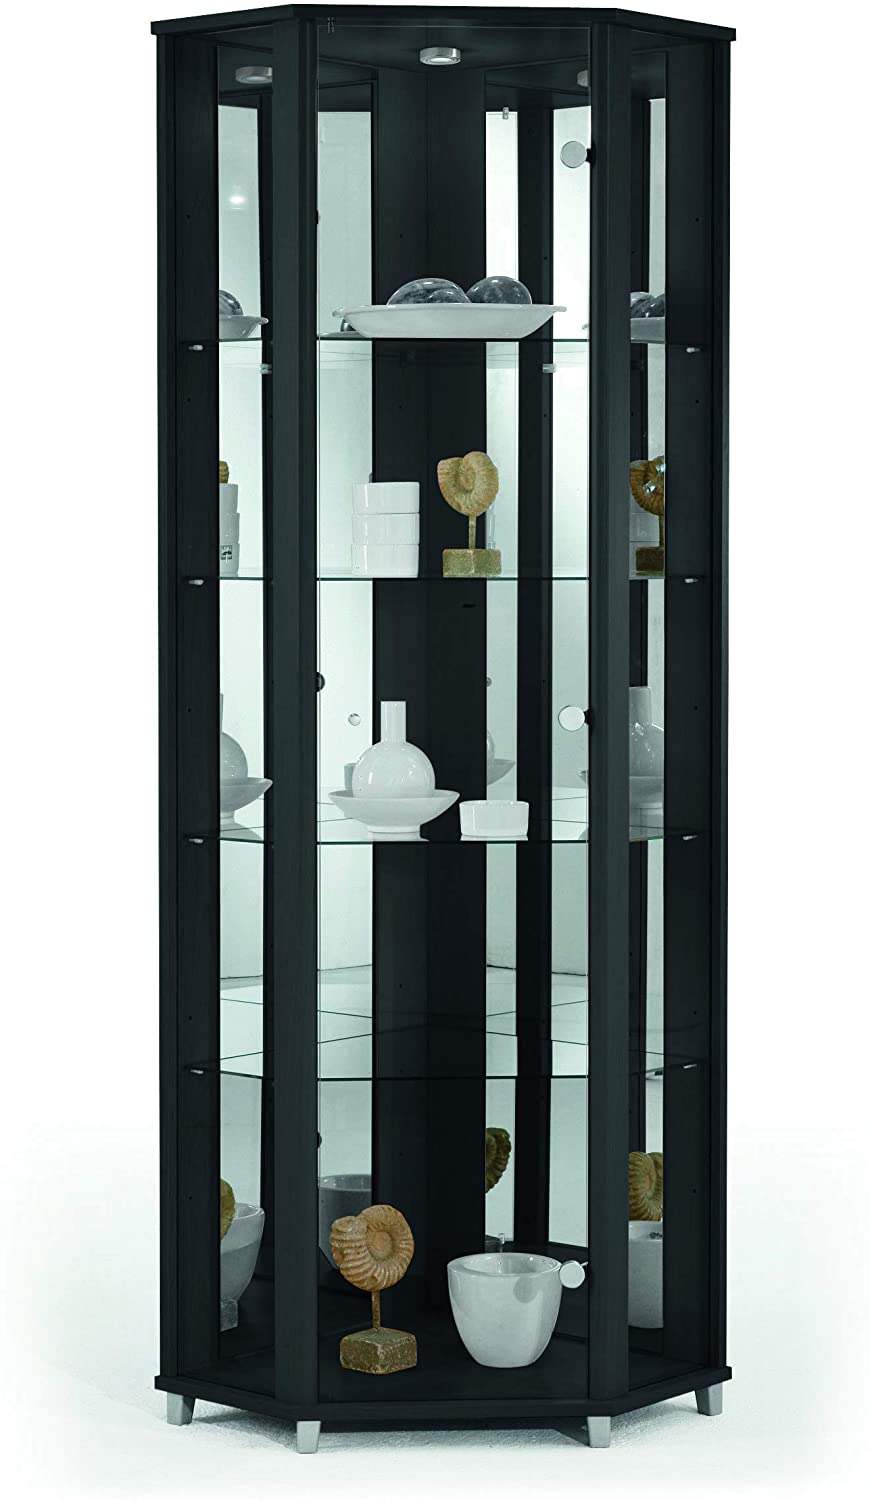 Display Cabinets with Glass Doors New Home Corner Glass Door Display Cabinet Black with Mirror Back 4 Moveable Glass Shelves & Spotlight